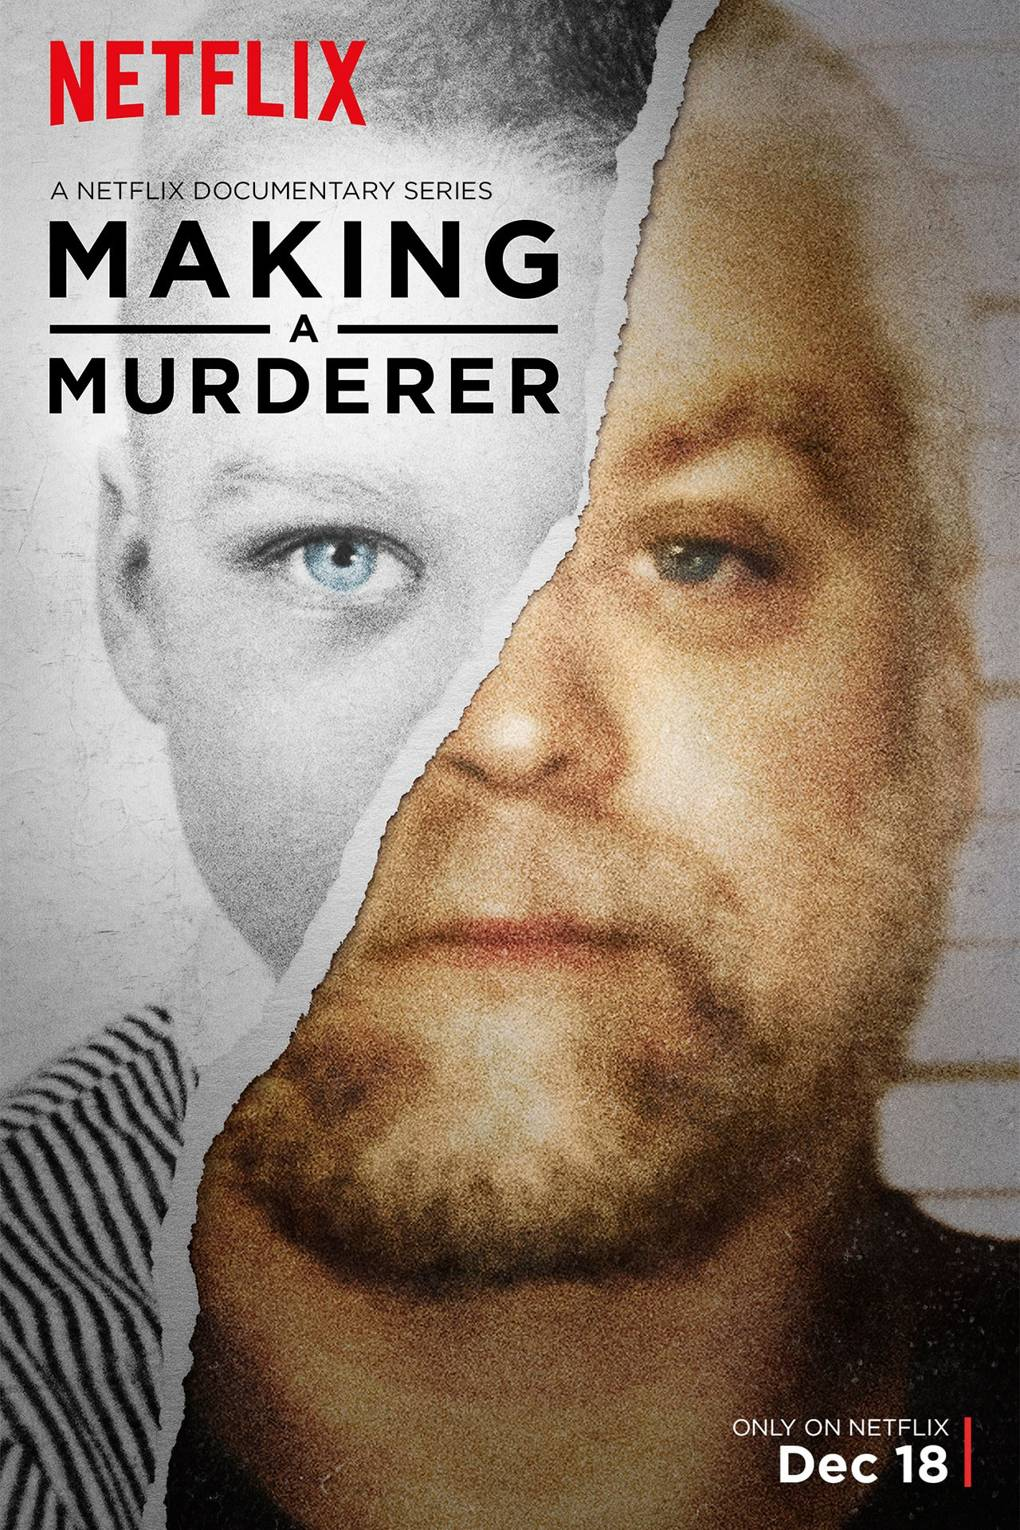 True Crime Documentaries On Netflix: Shows Like Making A